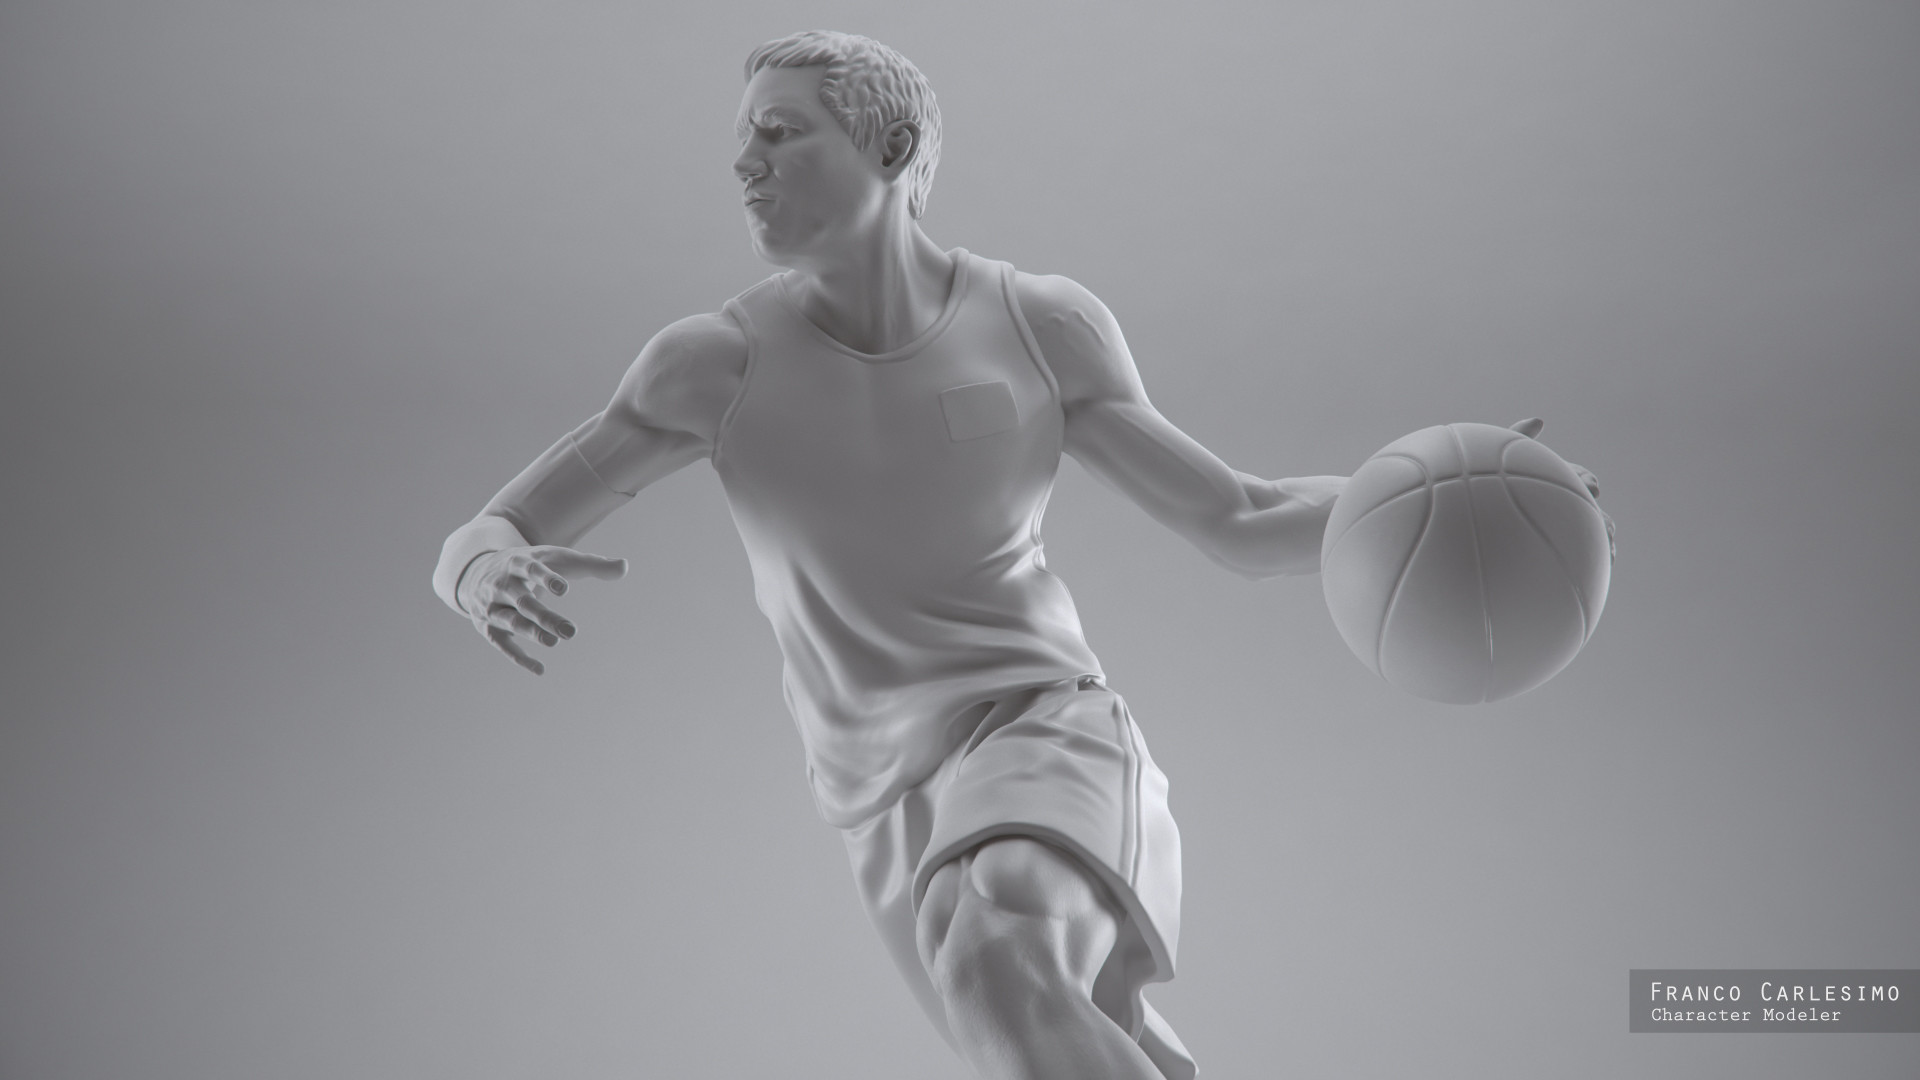 Franco carlesimo players 00014